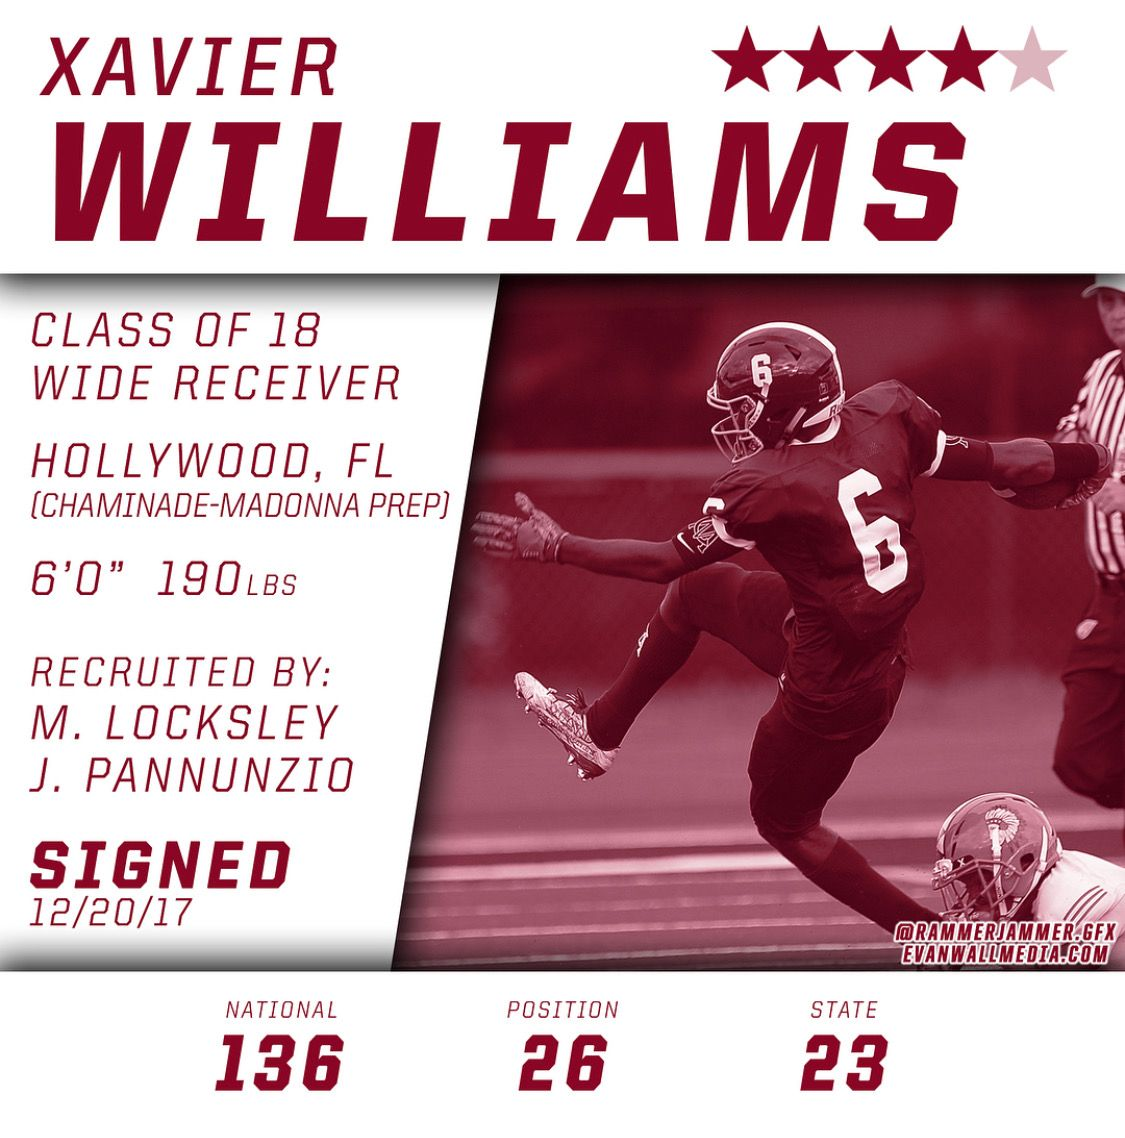 Xavier Williams 4 Star Wr Signed With Alabama Graphic From Rammerjammer Gfx On Instag Alabama Crimson Tide Alabama Football Roll Tide Crimson Tide Football